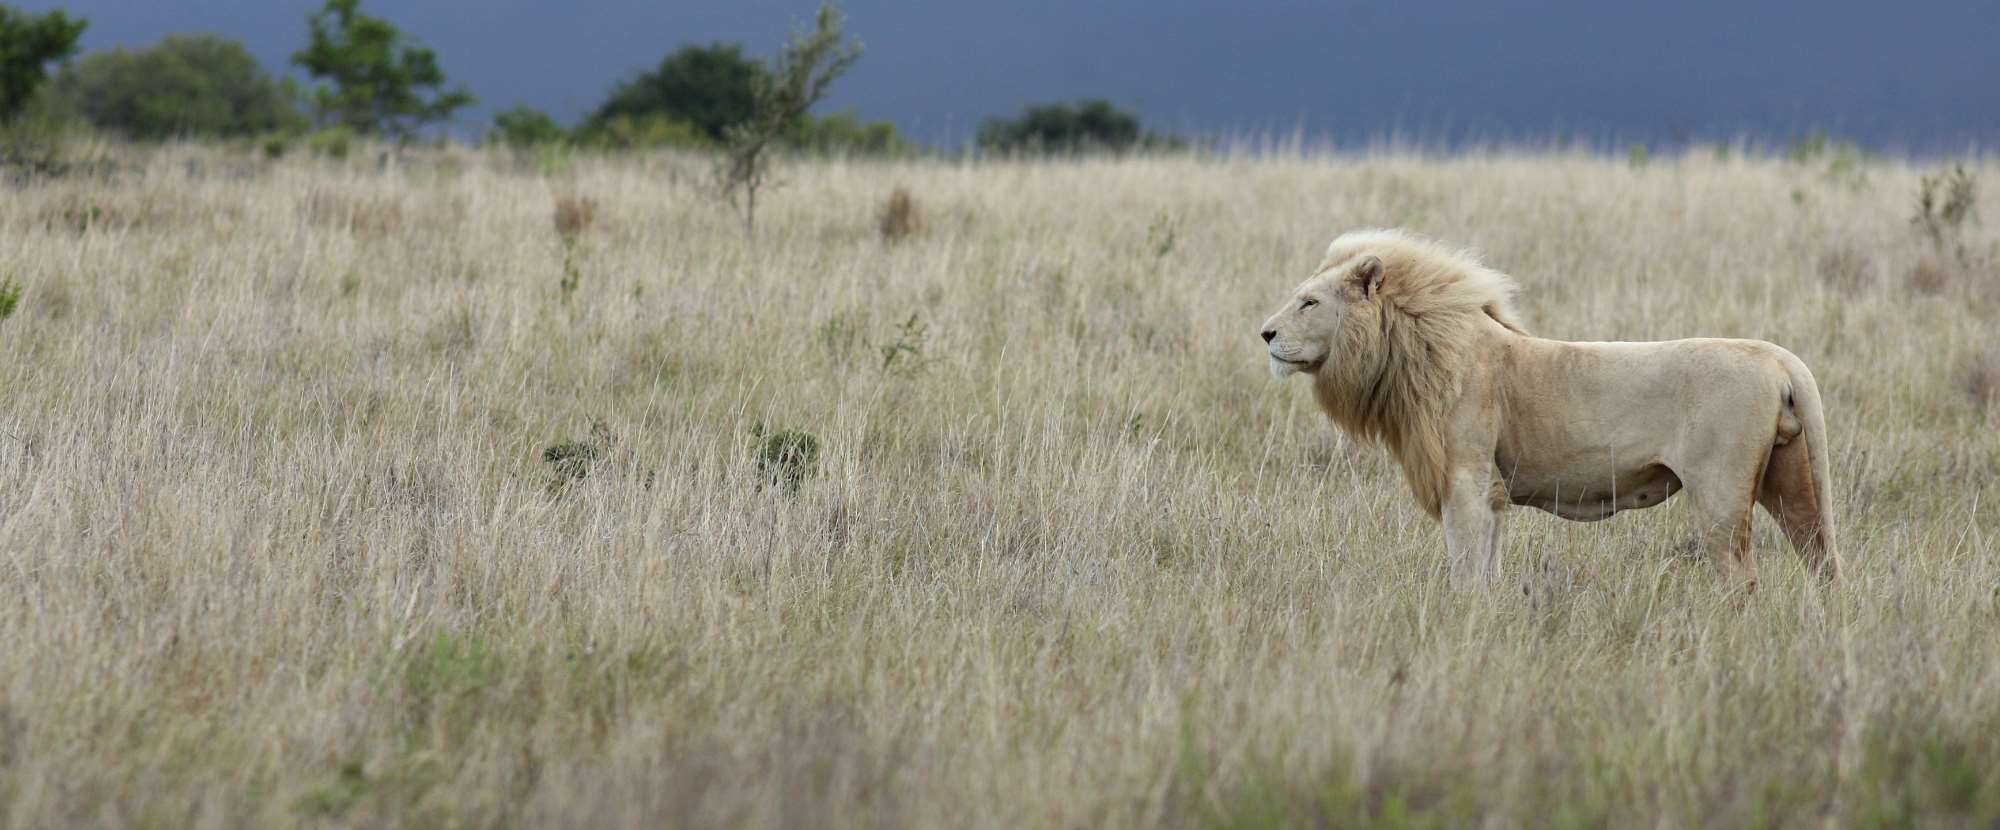 Meet the Big Five - The Lion